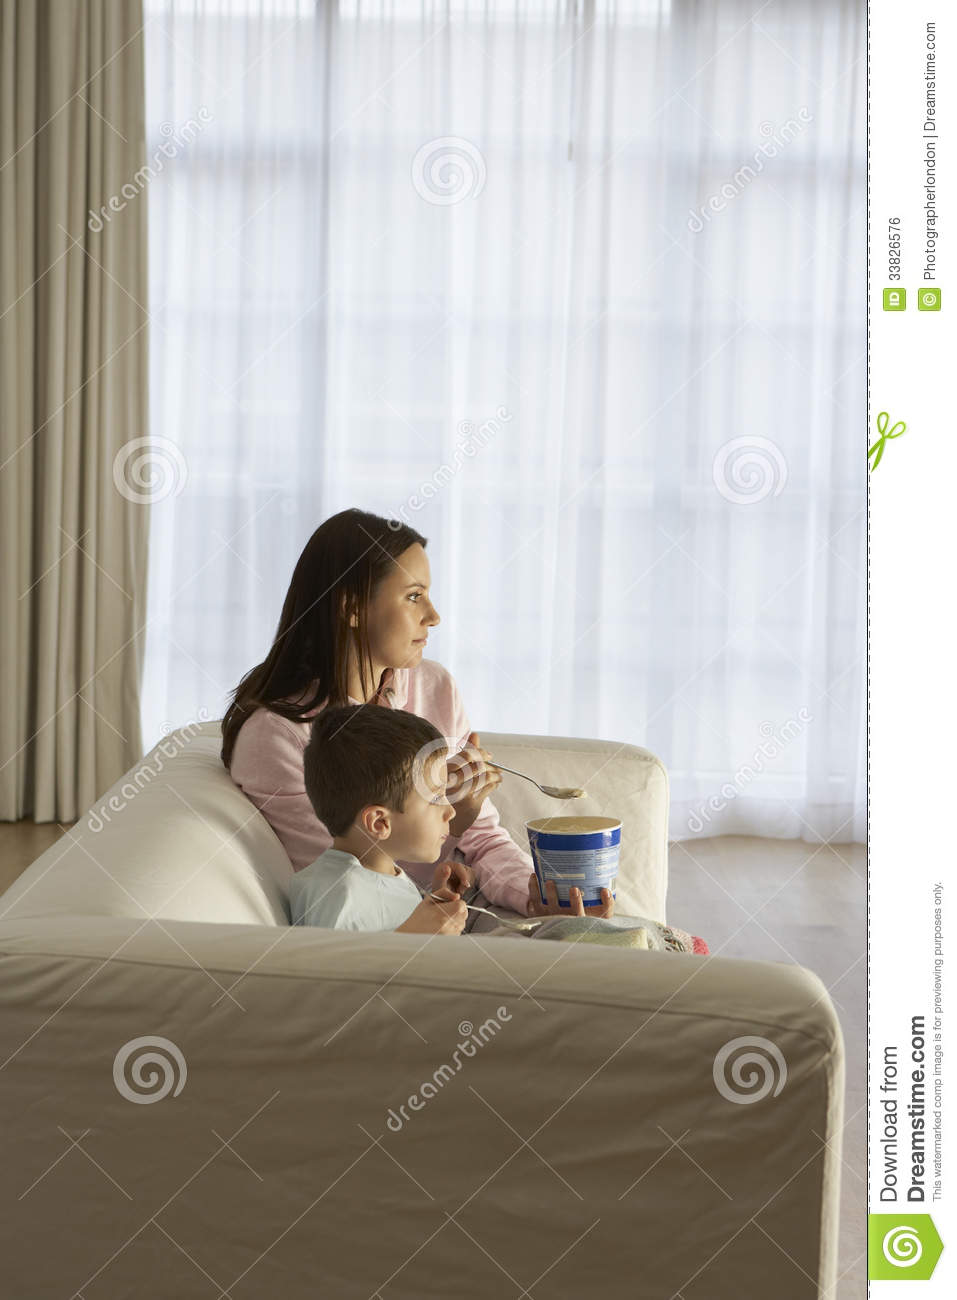 Sofa U Mother And Son Watching Tv Royalty Free Stock Image